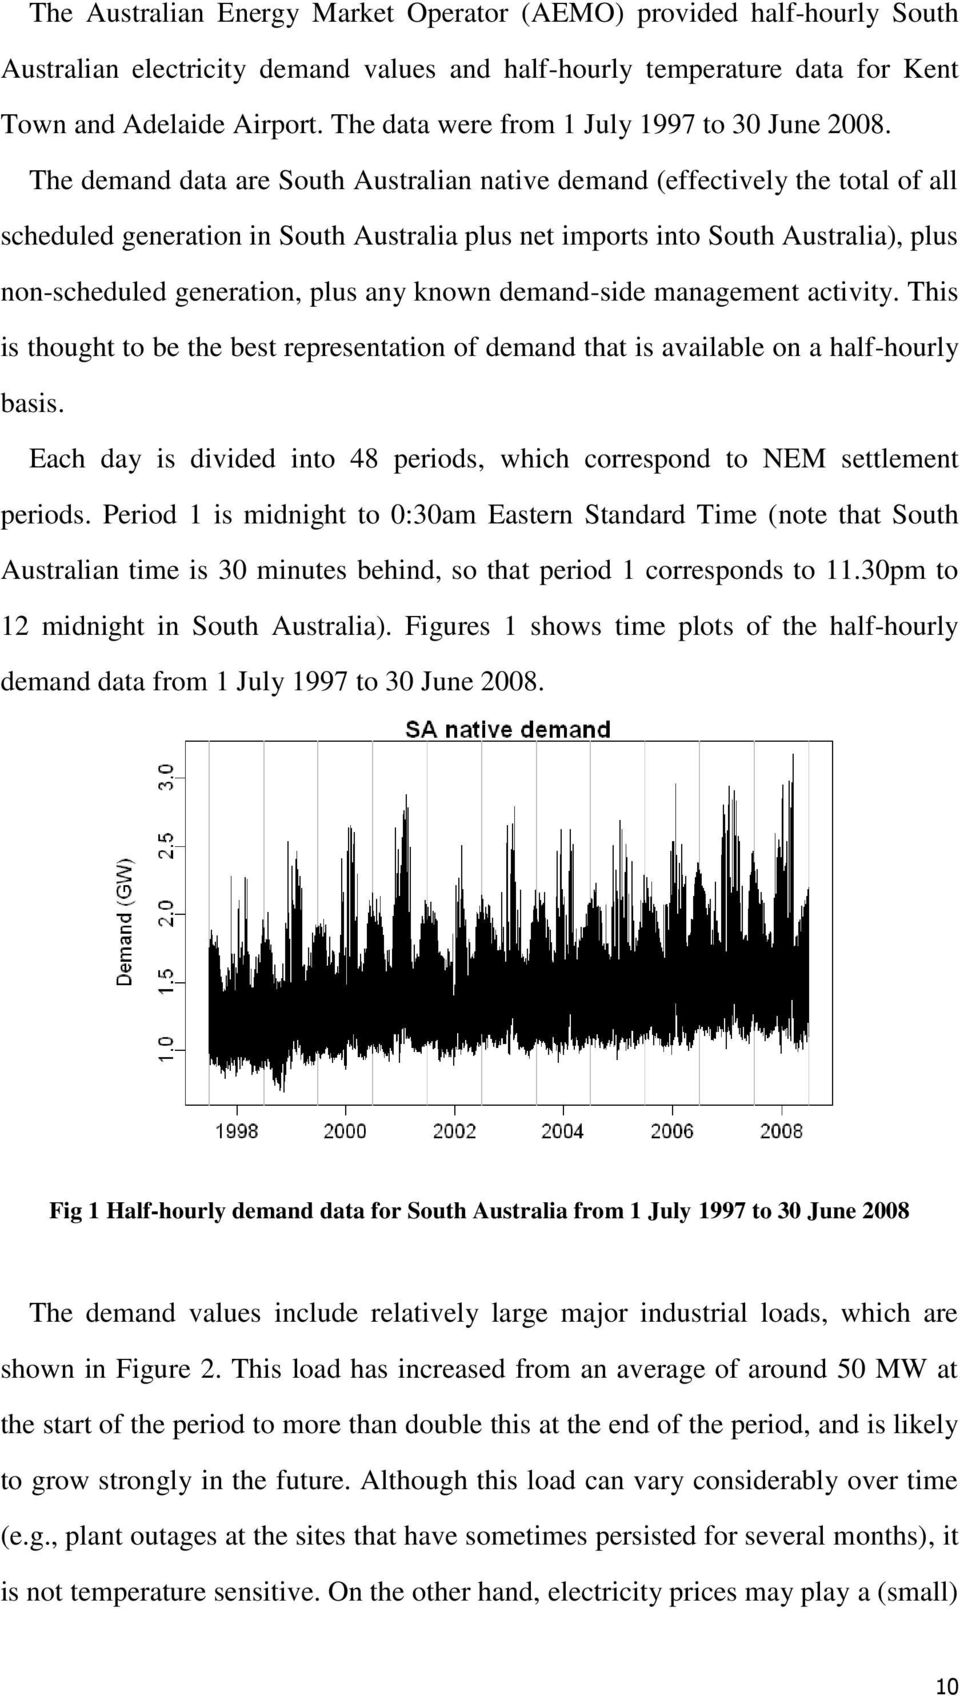 The demand data are South Australian native demand (effectively the total of all scheduled generation in South Australia plus net imports into South Australia), plus non-scheduled generation, plus